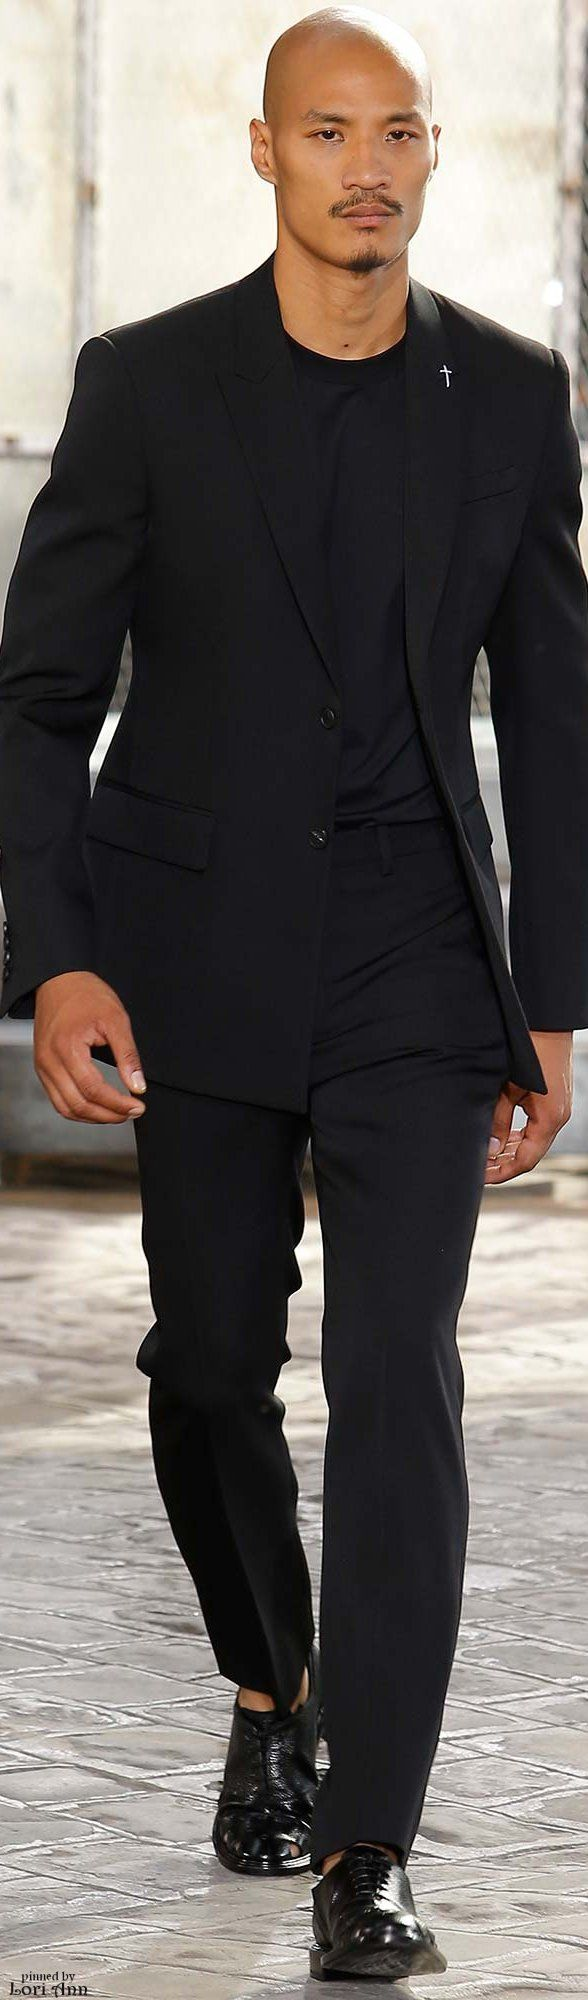 Givenchy Spring 2016 Black Suit Black On Black Men 39 S Fashion Menswear Shop At